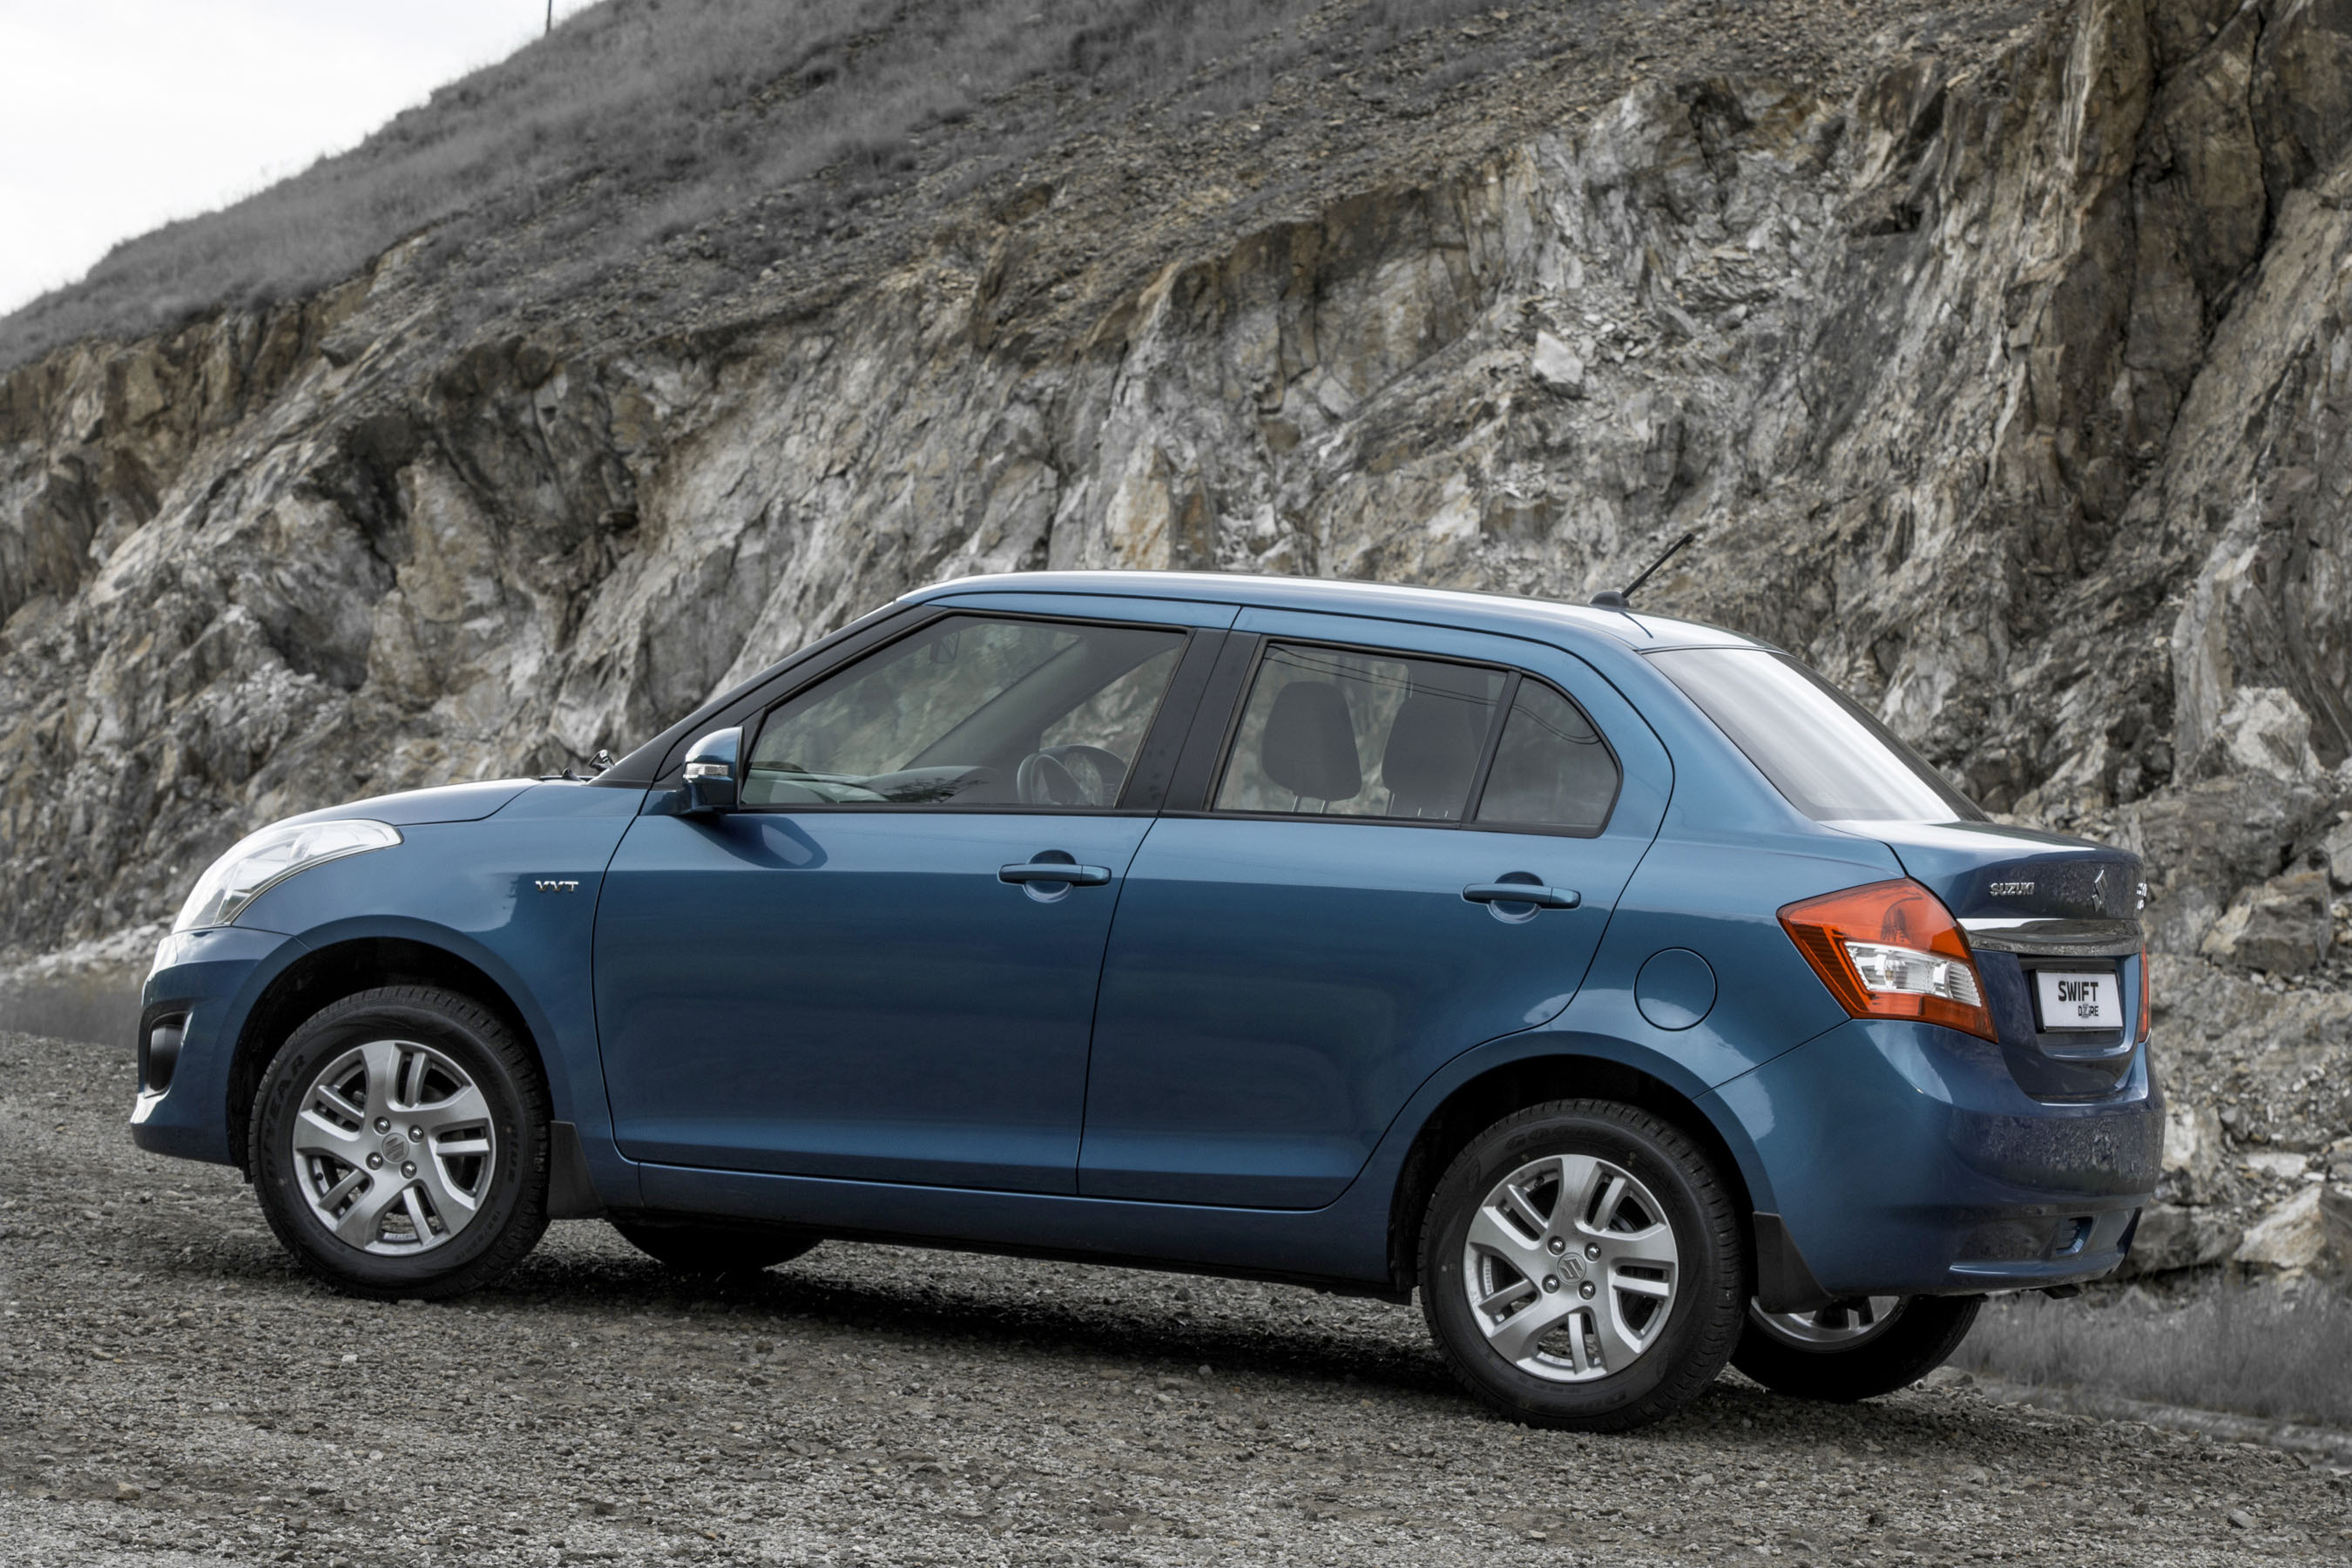 Bangalore Car Hire - Rent a Swift DZire